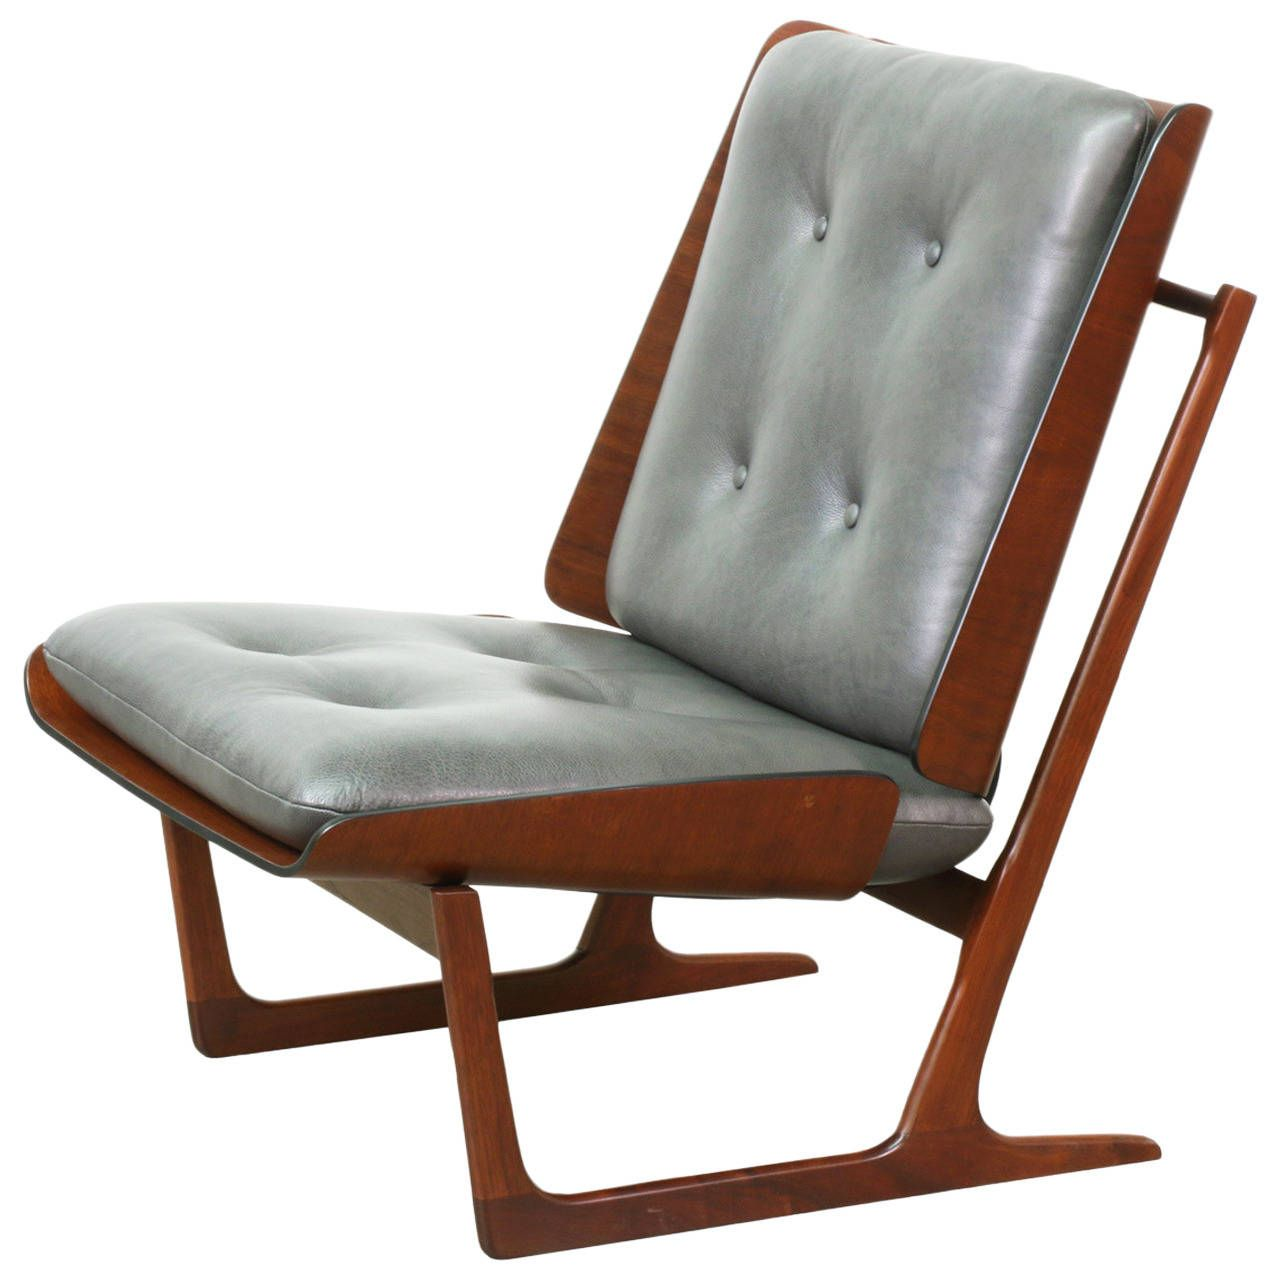 Wondrous Midcentury Molded Plywood Sled Lounge Chair Primrose Andrewgaddart Wooden Chair Designs For Living Room Andrewgaddartcom